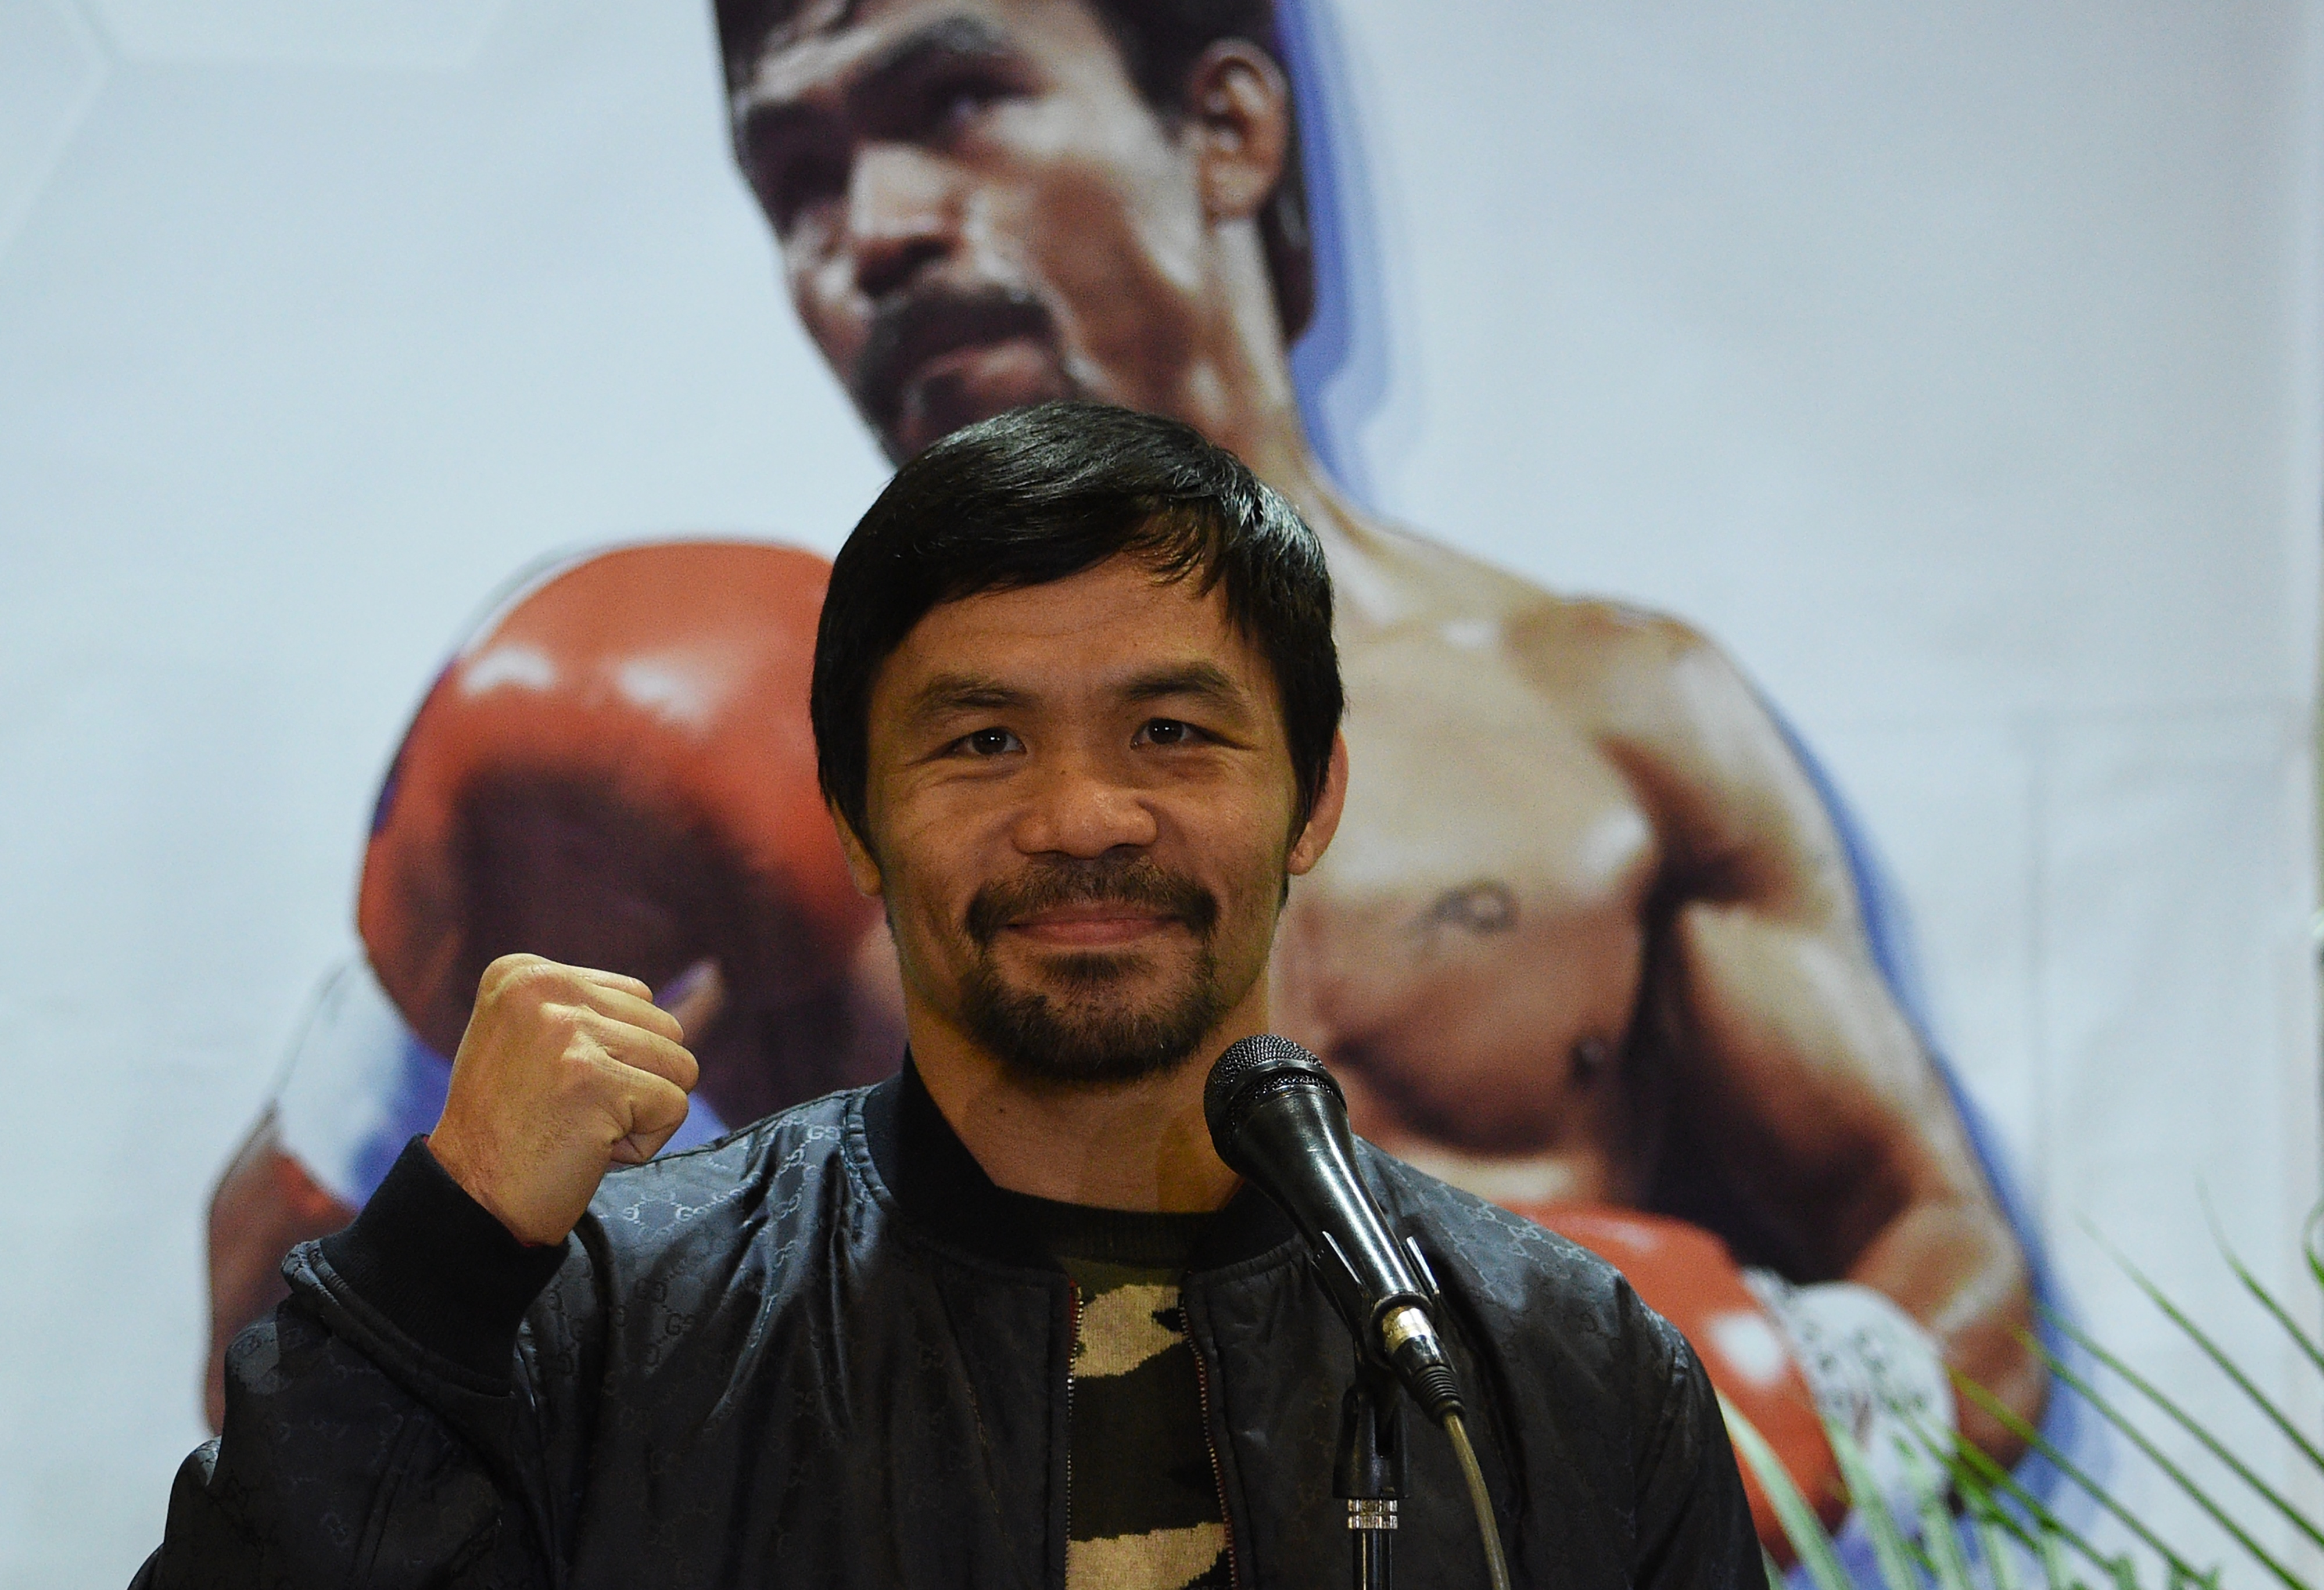 Senator Manny Pacquiao will be gunning for the highest political seat in his home country of the Philippines.